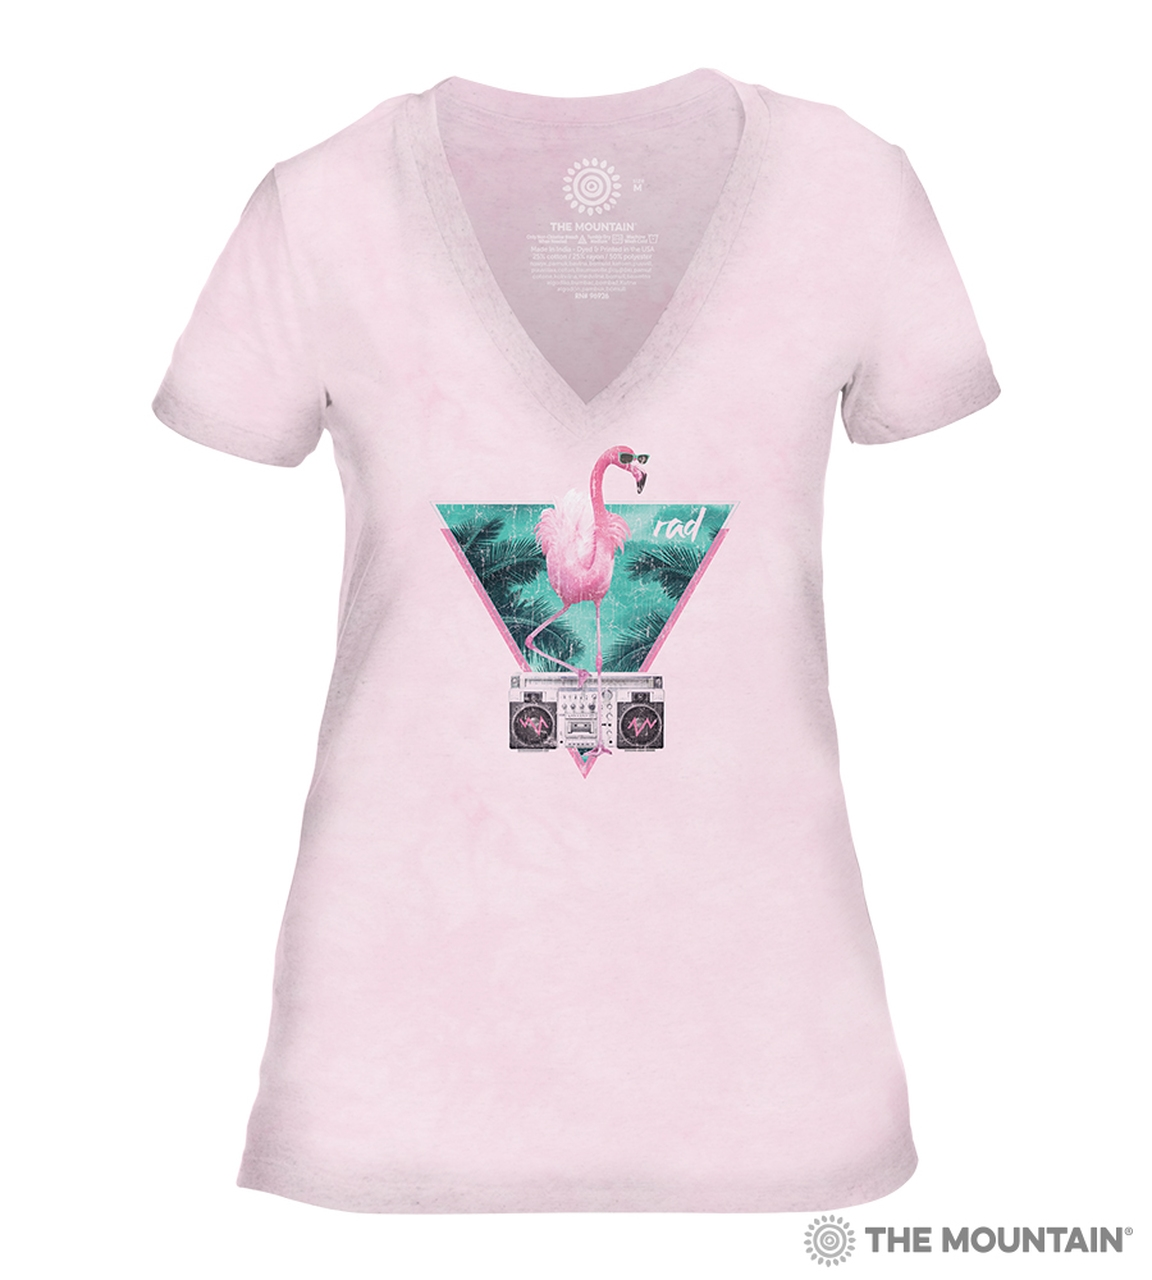 Rad Flamingo - Pink - 41-6342 - Women's Triblend V-Neck Tee